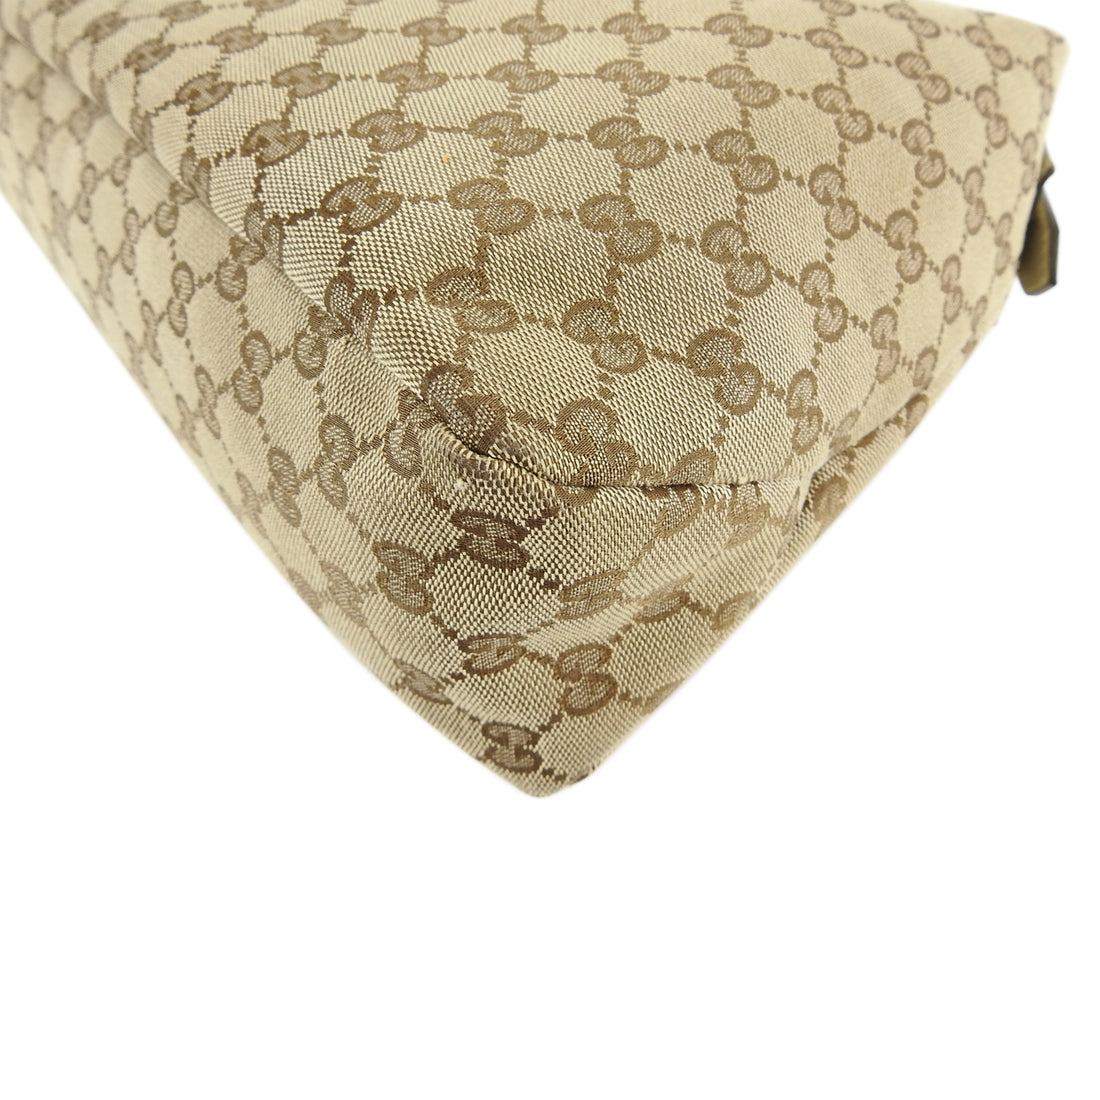 Gucci Ivory Monogram Canvas Horsebit Hobo Bag